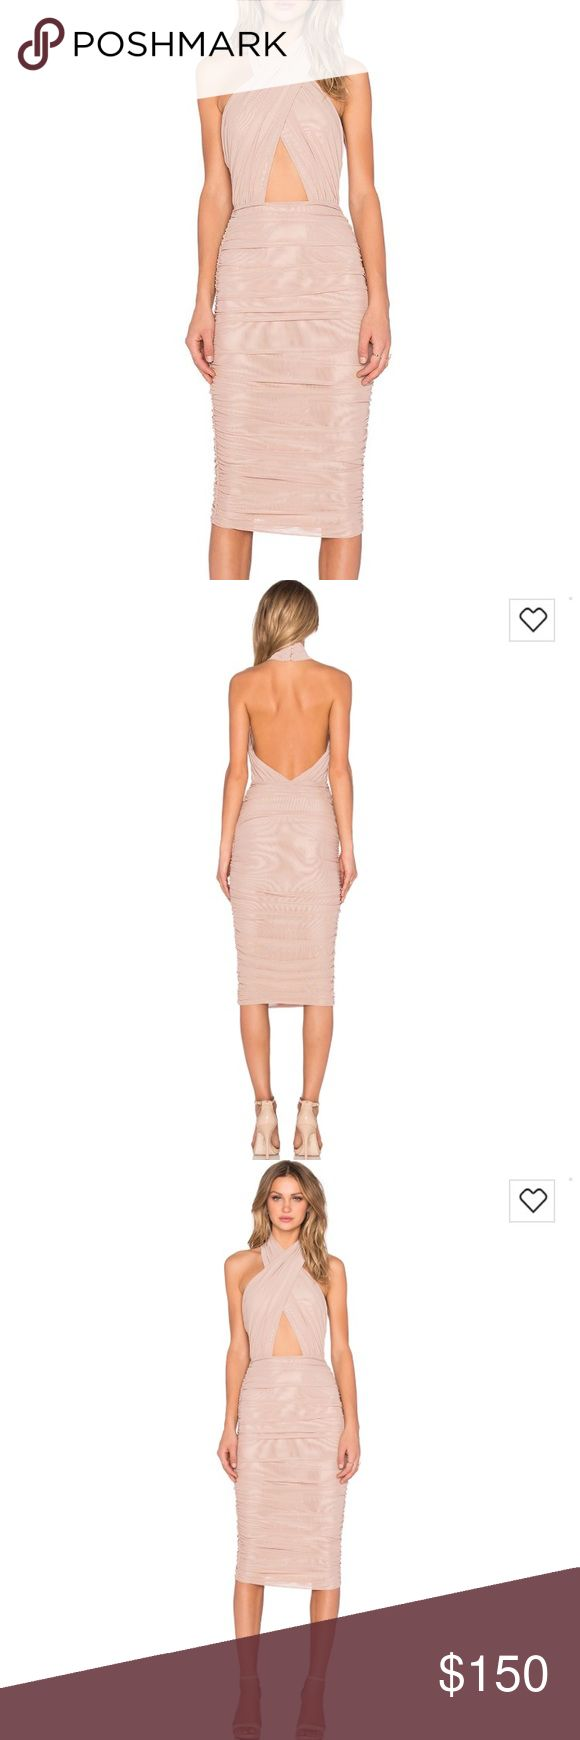 Misha Collection Nude Keziah Dress - Size 6 Gorgeous Misha Collection Keziah Dress in Nude. Size 6 - probably fits 4/6.  Shiny mesh material. Great condition - worn once. MISHA COLLECTION Dresses